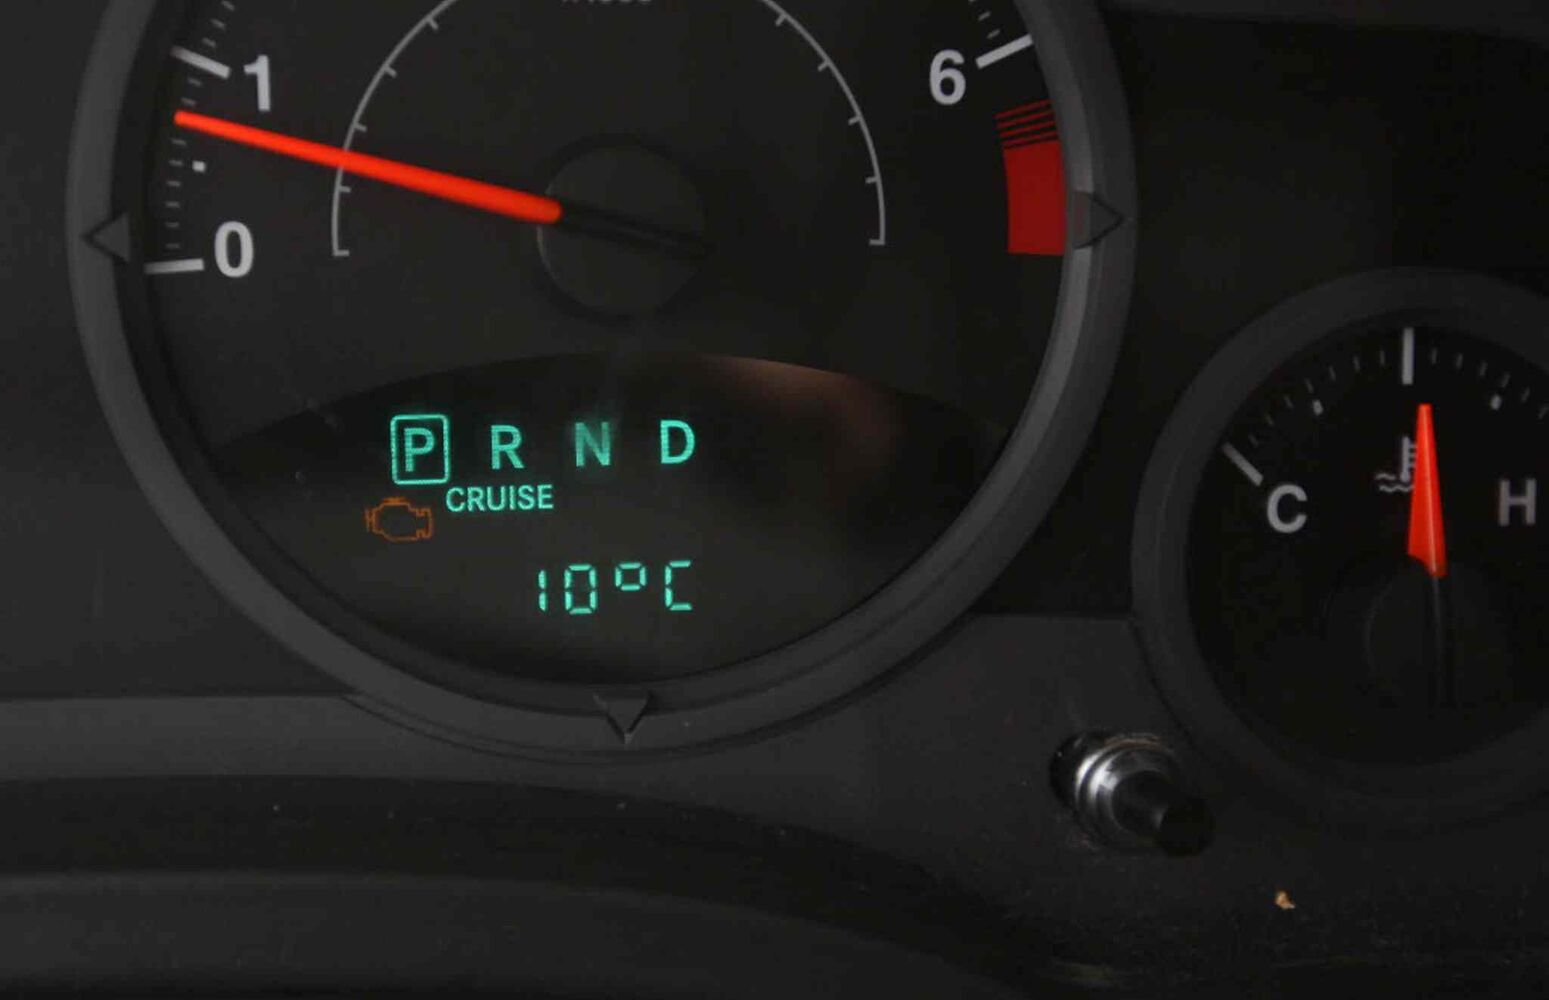 And they've hit double-digits! The North Dakota/South Dakota border was recording temperatures at 10 C.